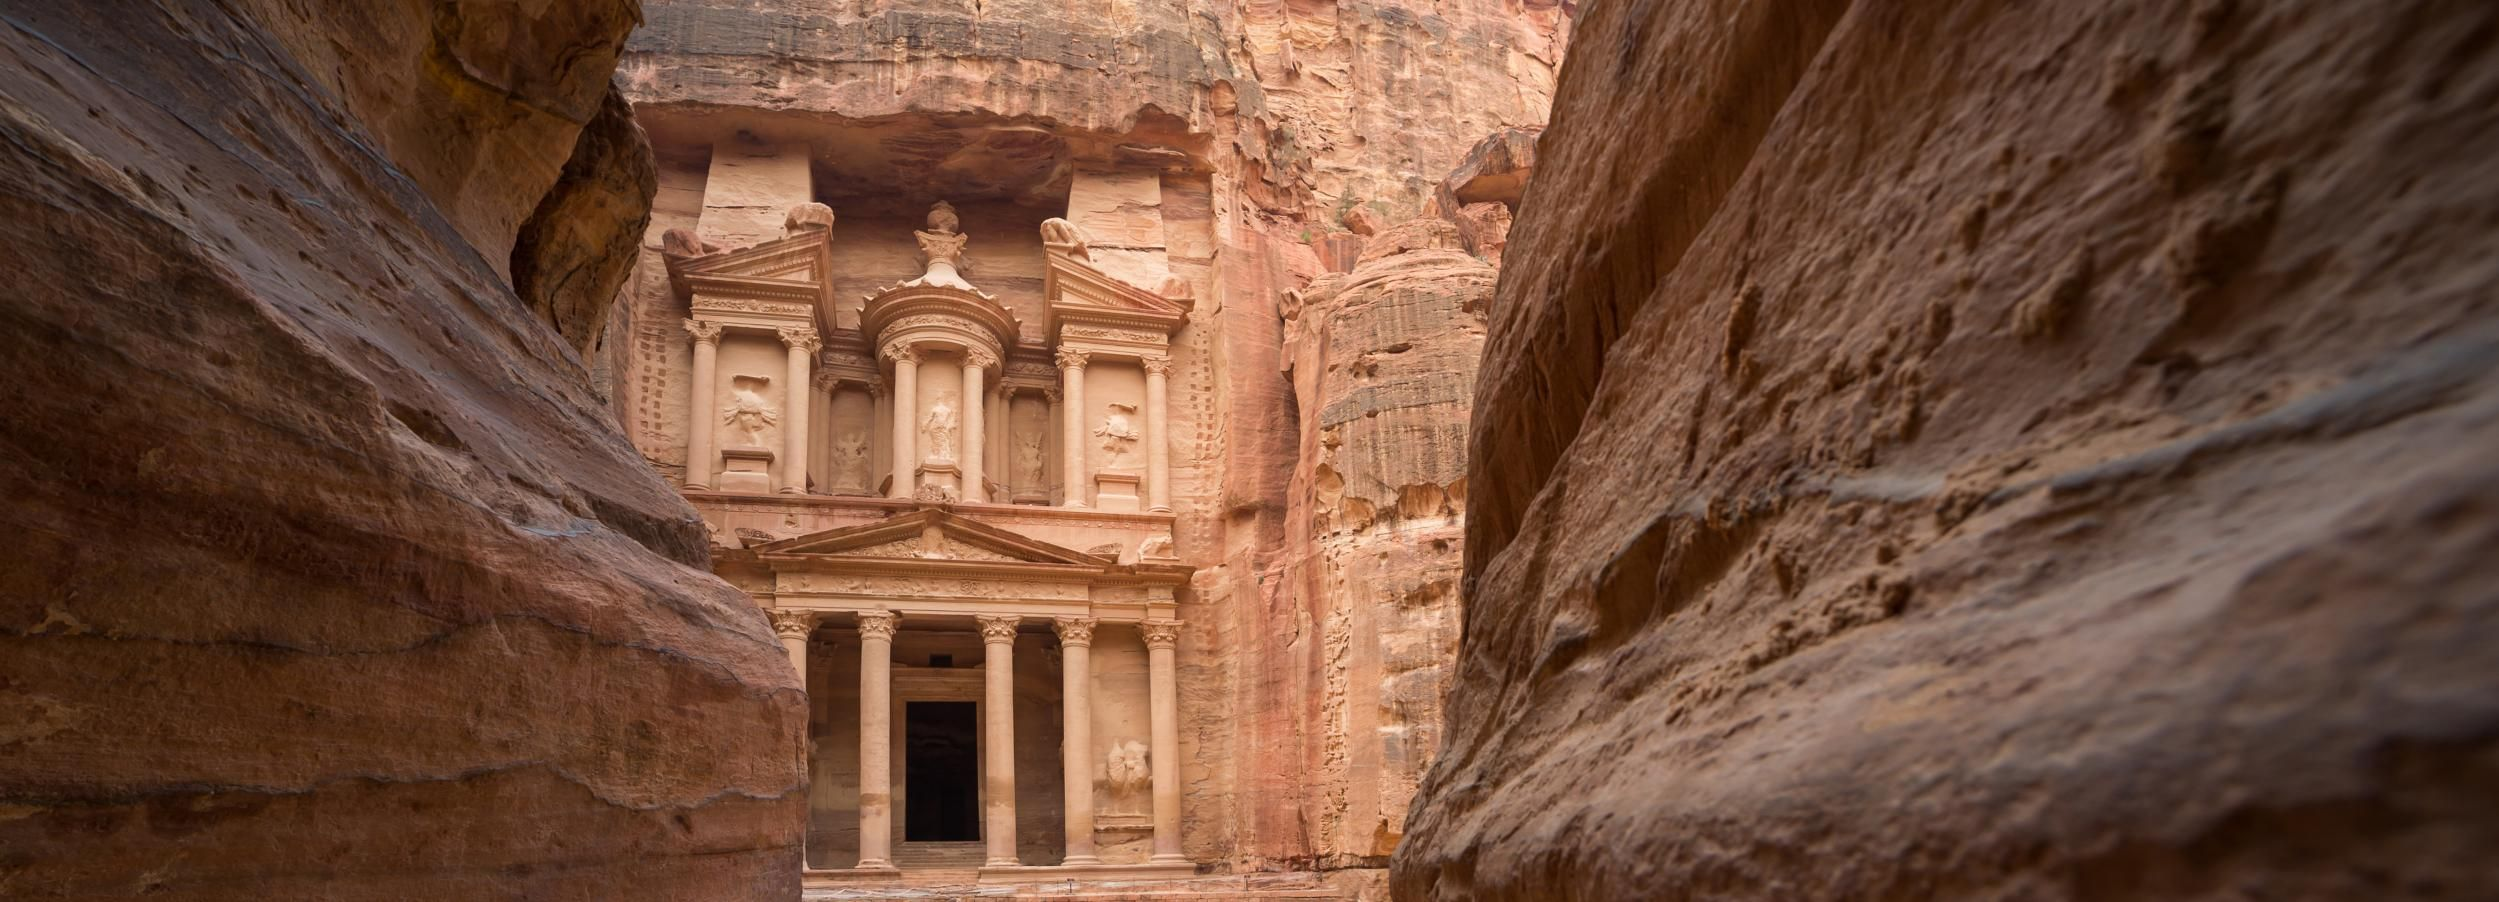 From Eilat: Petra Ancient City Tour and Buffet Lunch